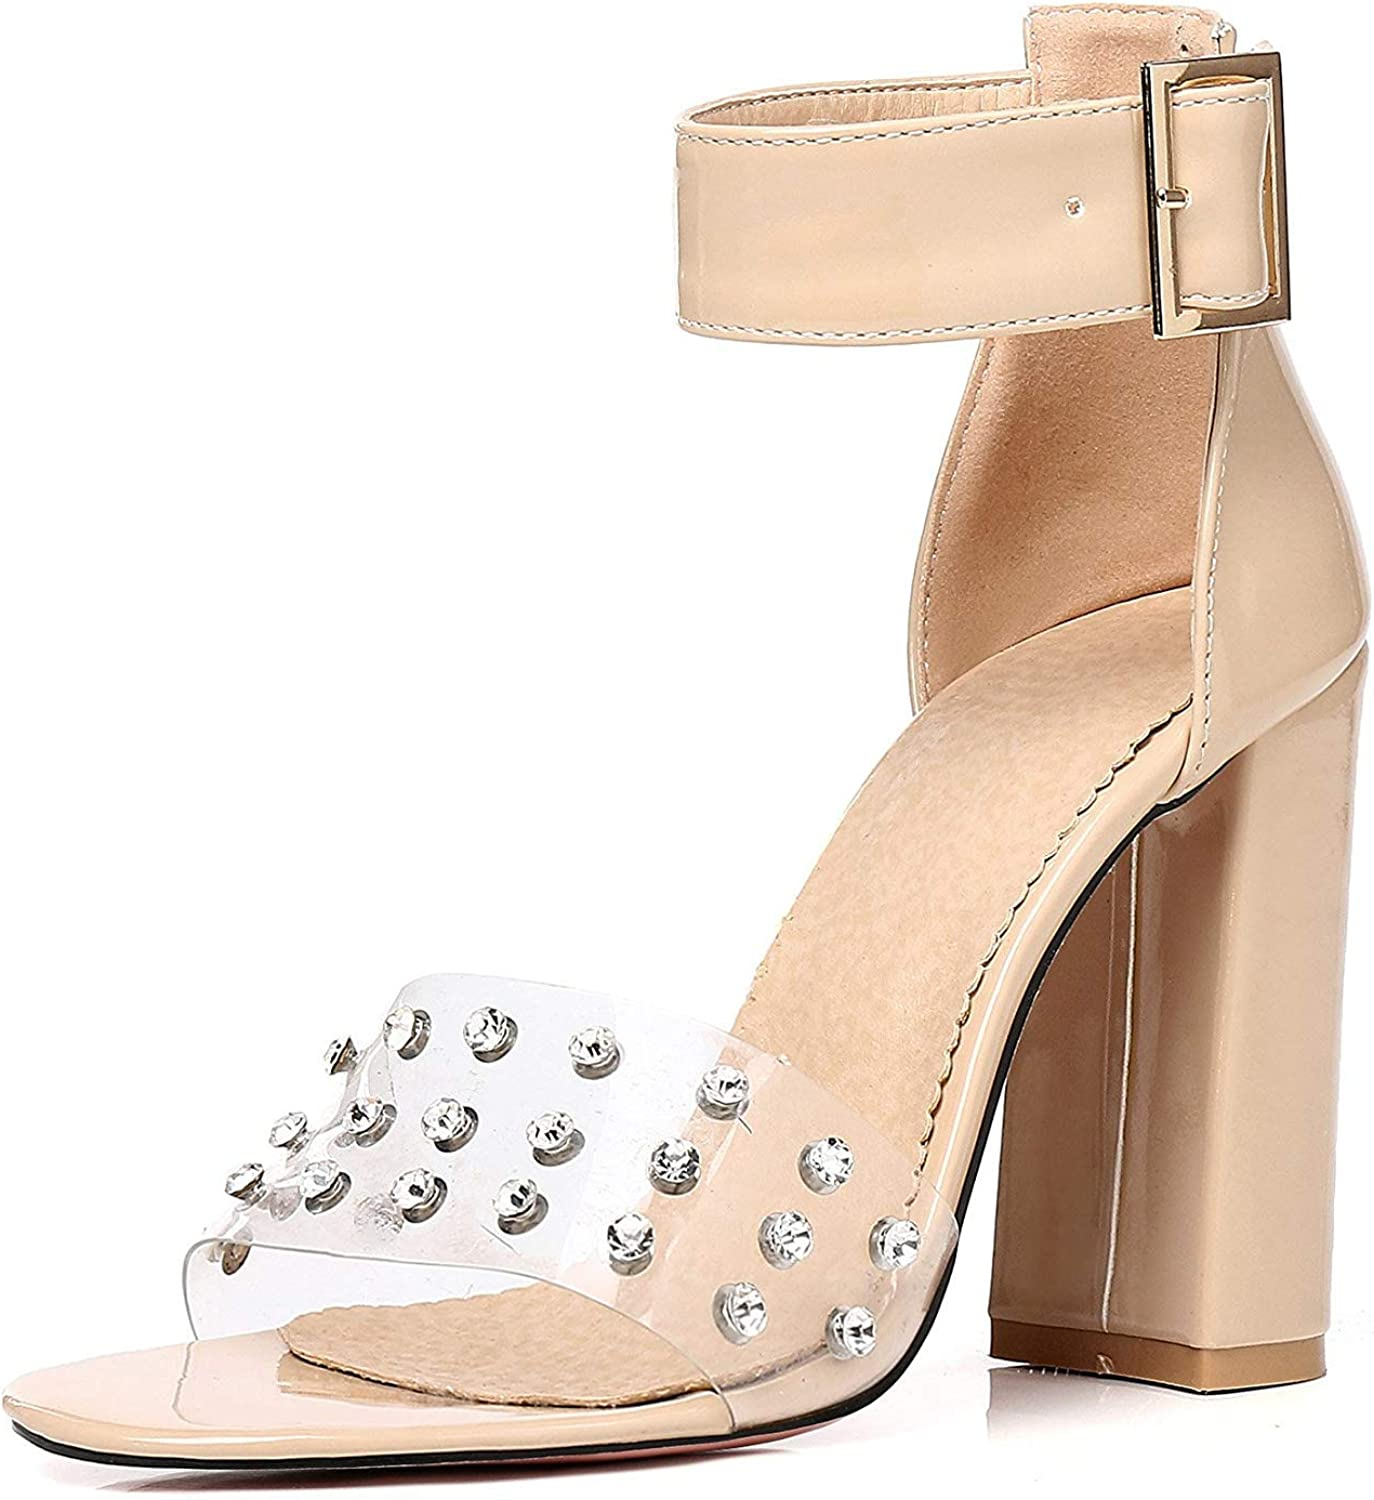 Unm Womens Open Toe Sandals with Studs Clear Jelly High Heel Buckled Ankle Strap Stacked